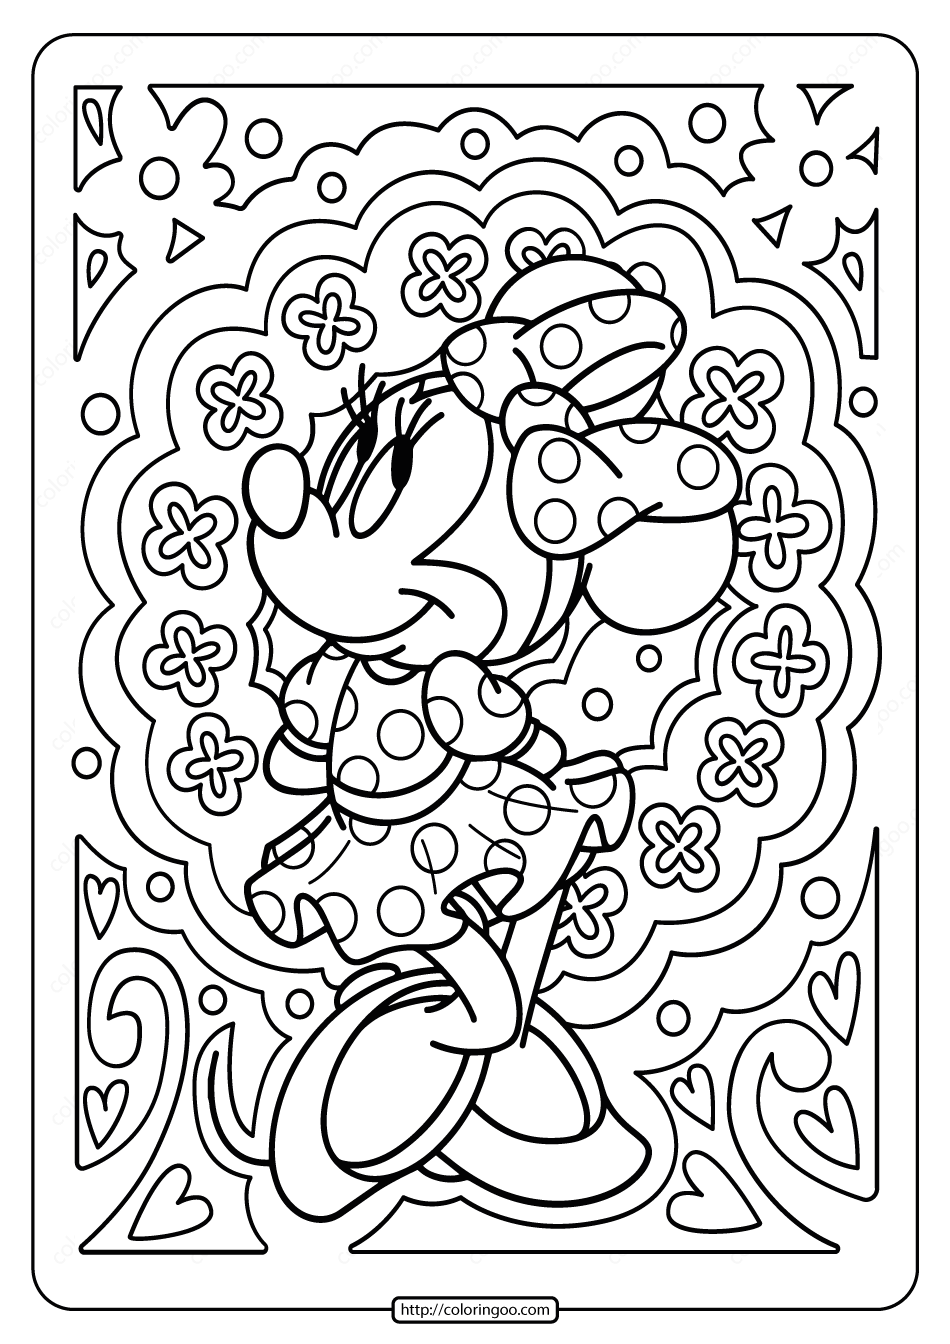 Printable Disney Minnie Mouse Pdf Coloring Page Minnie Mouse Coloring Pages Mickey Coloring Pages Mickey Mouse Coloring Pages